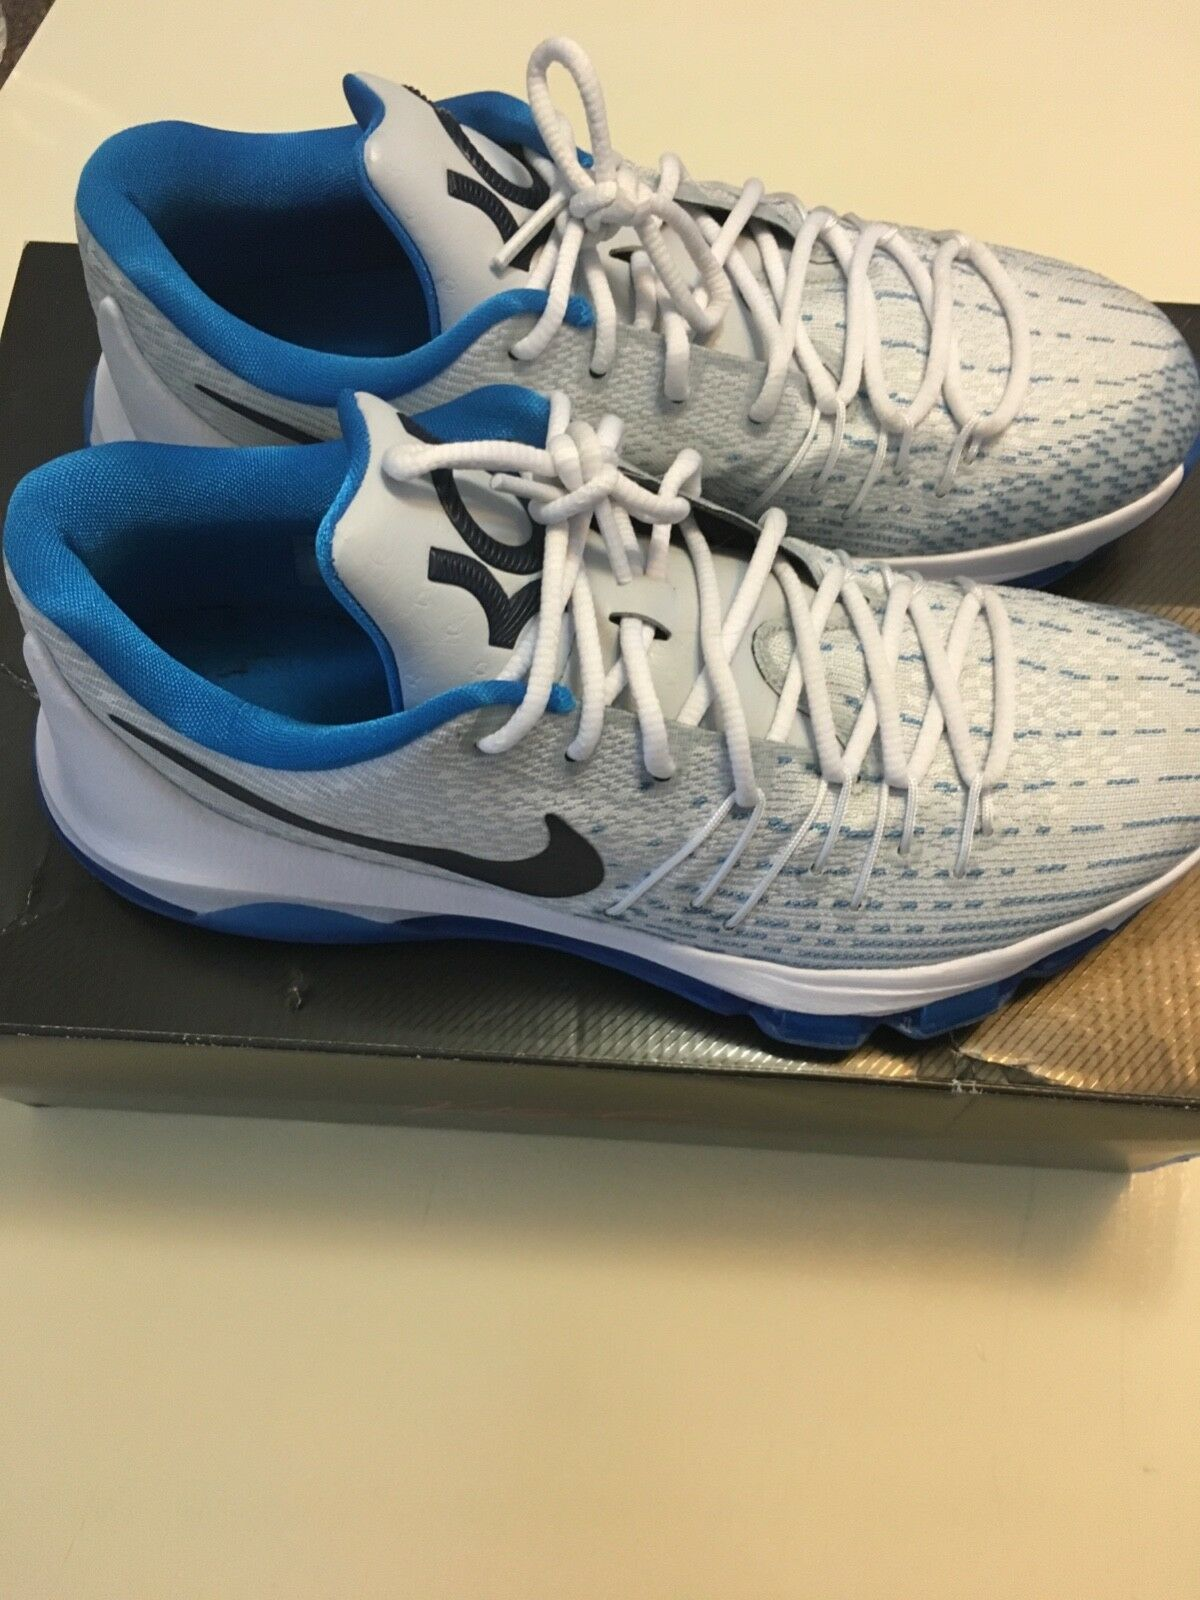 Men's KD8 Size Size Size 8.5. White bluee. Very good condition. c77d2a